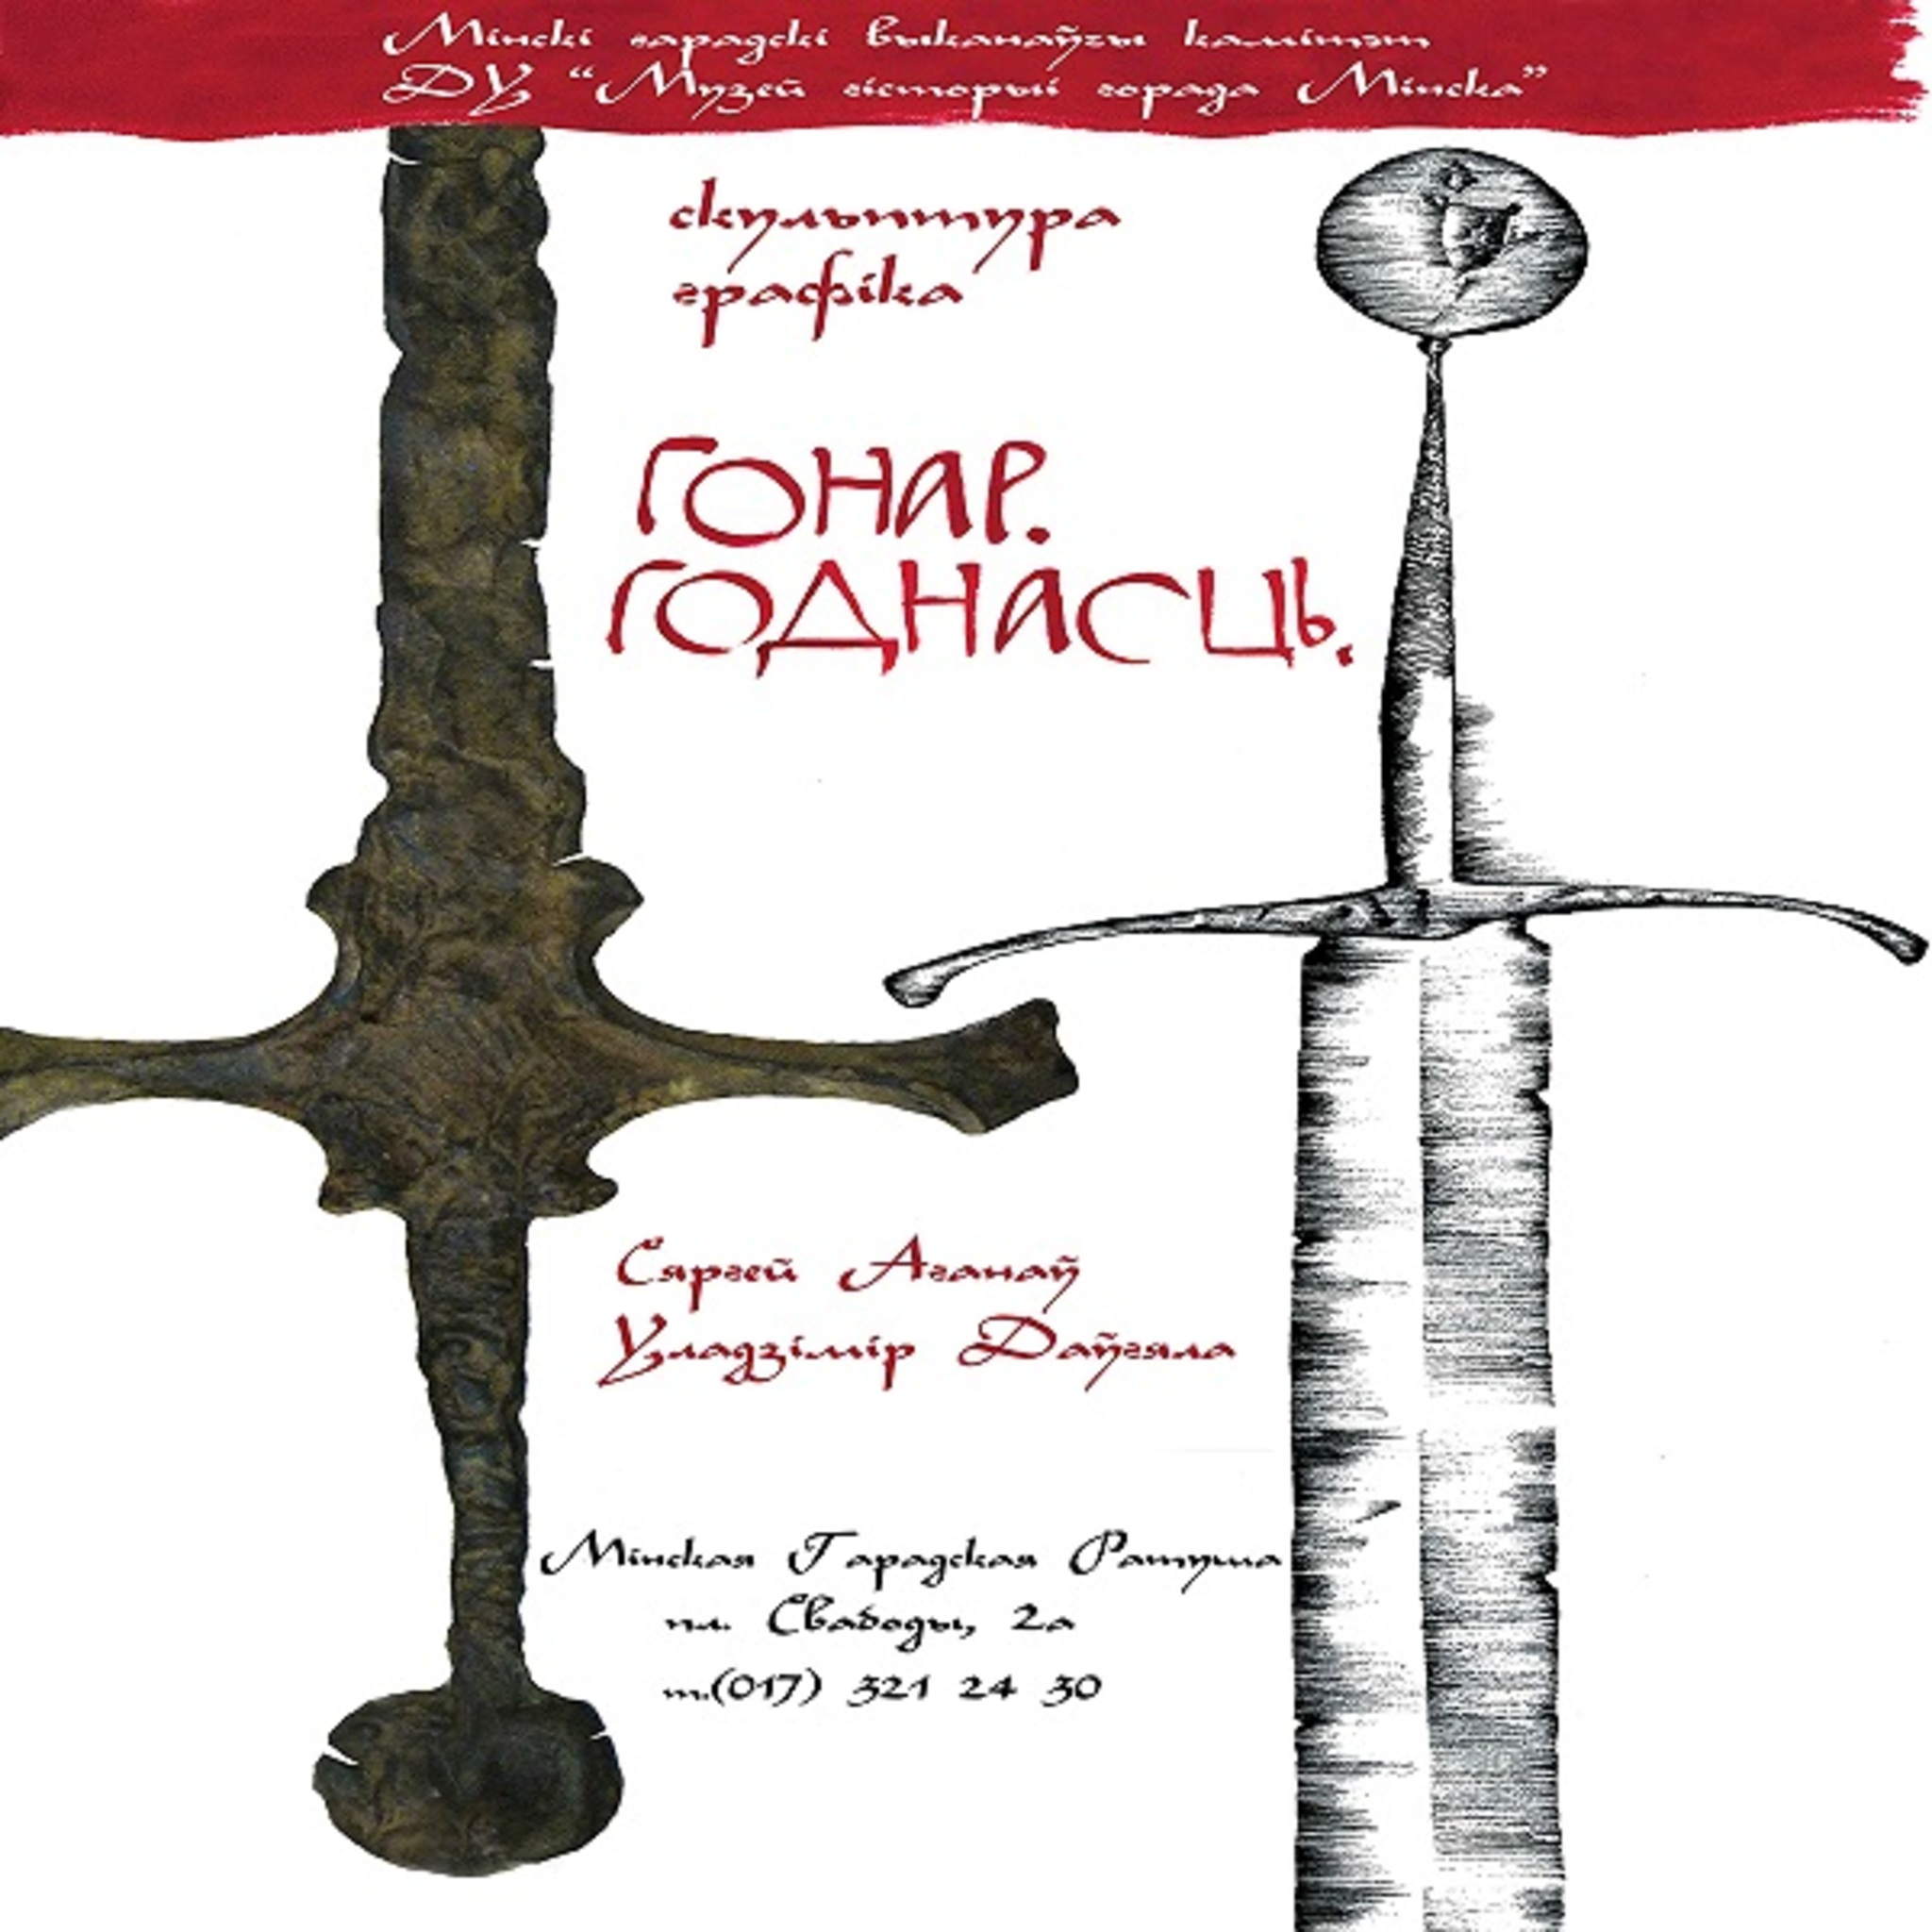 Exhibition of Vladimir and Sergei Oganov Dovgyalo Gonar. Godnasts